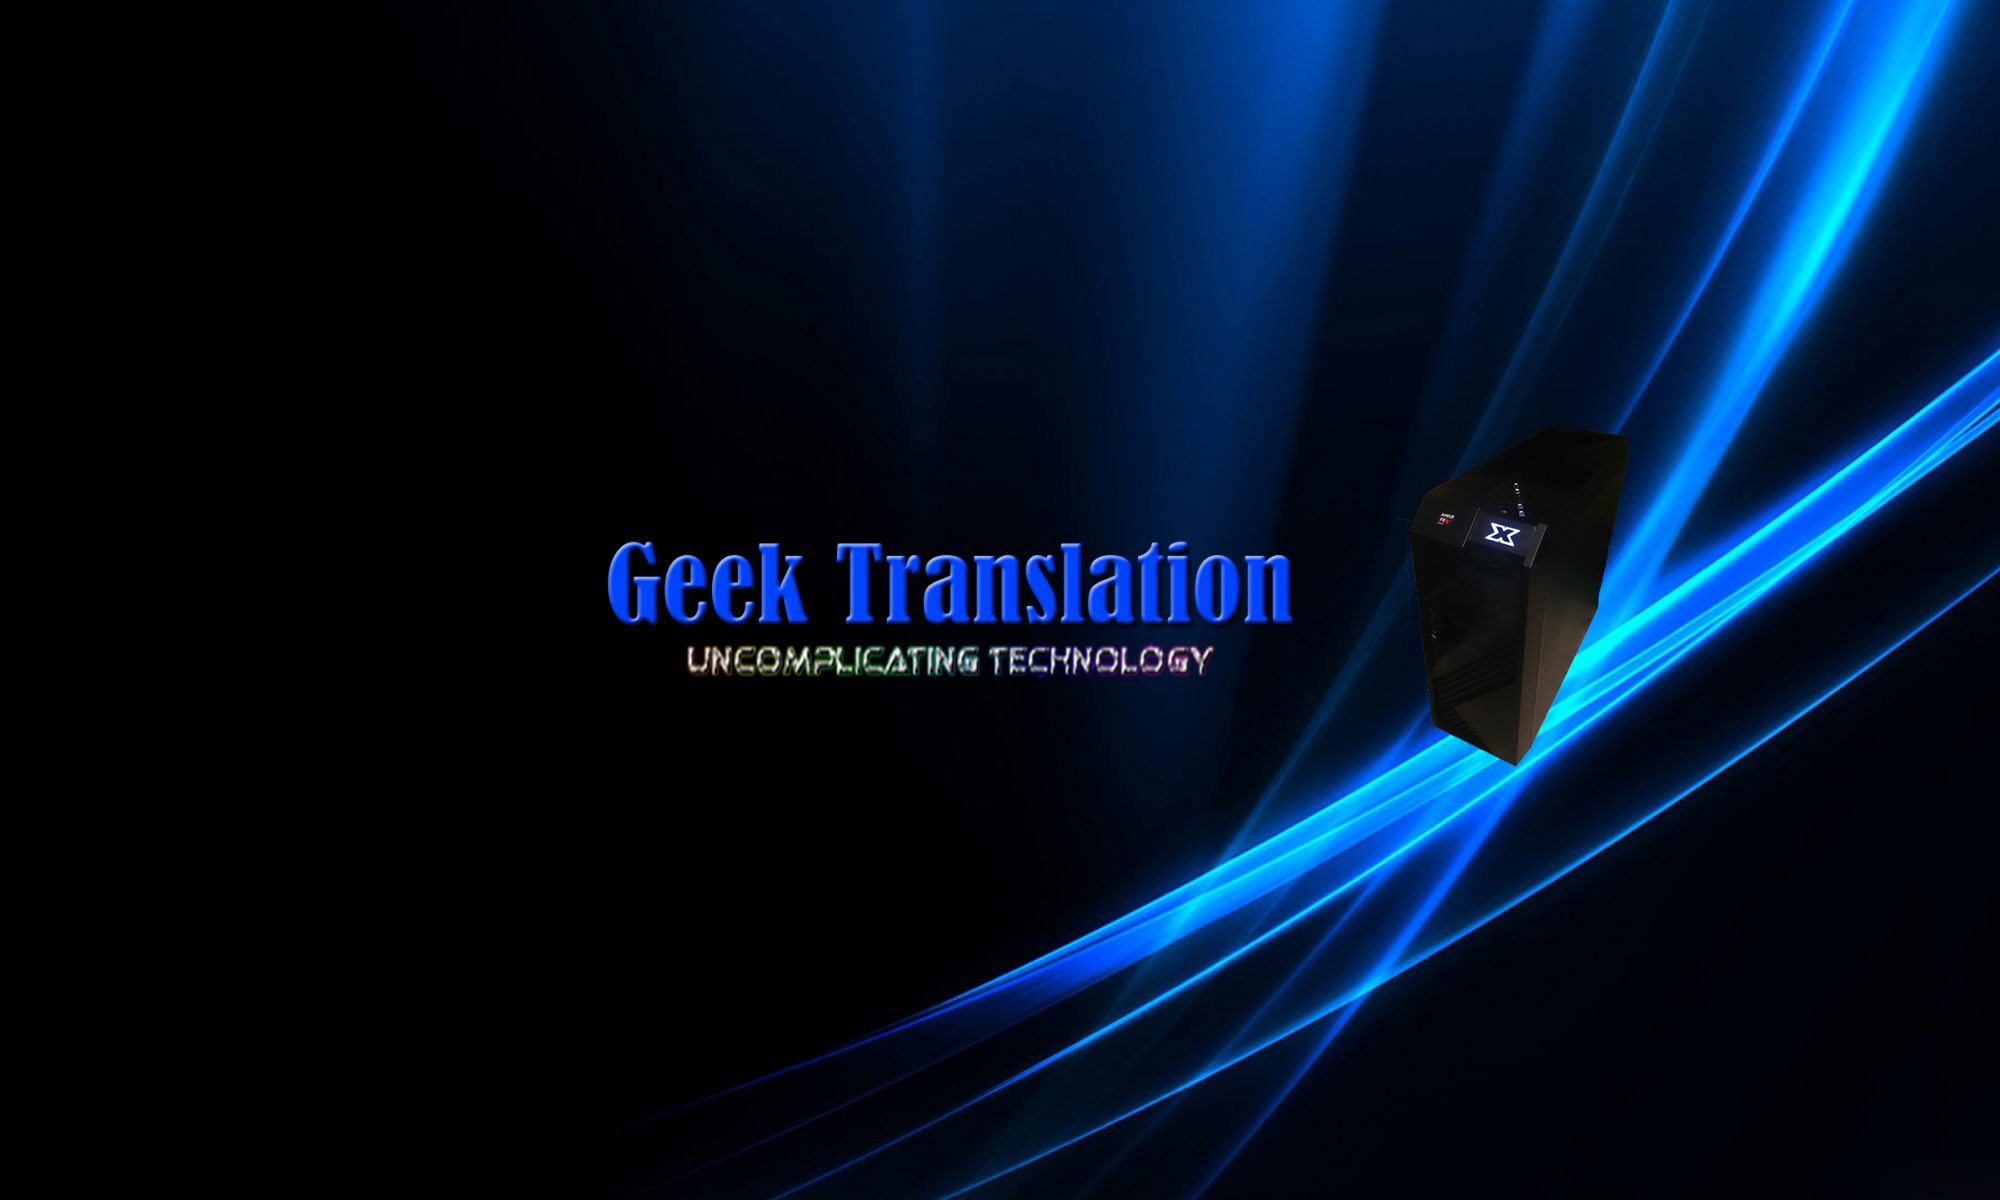 Geek Translation